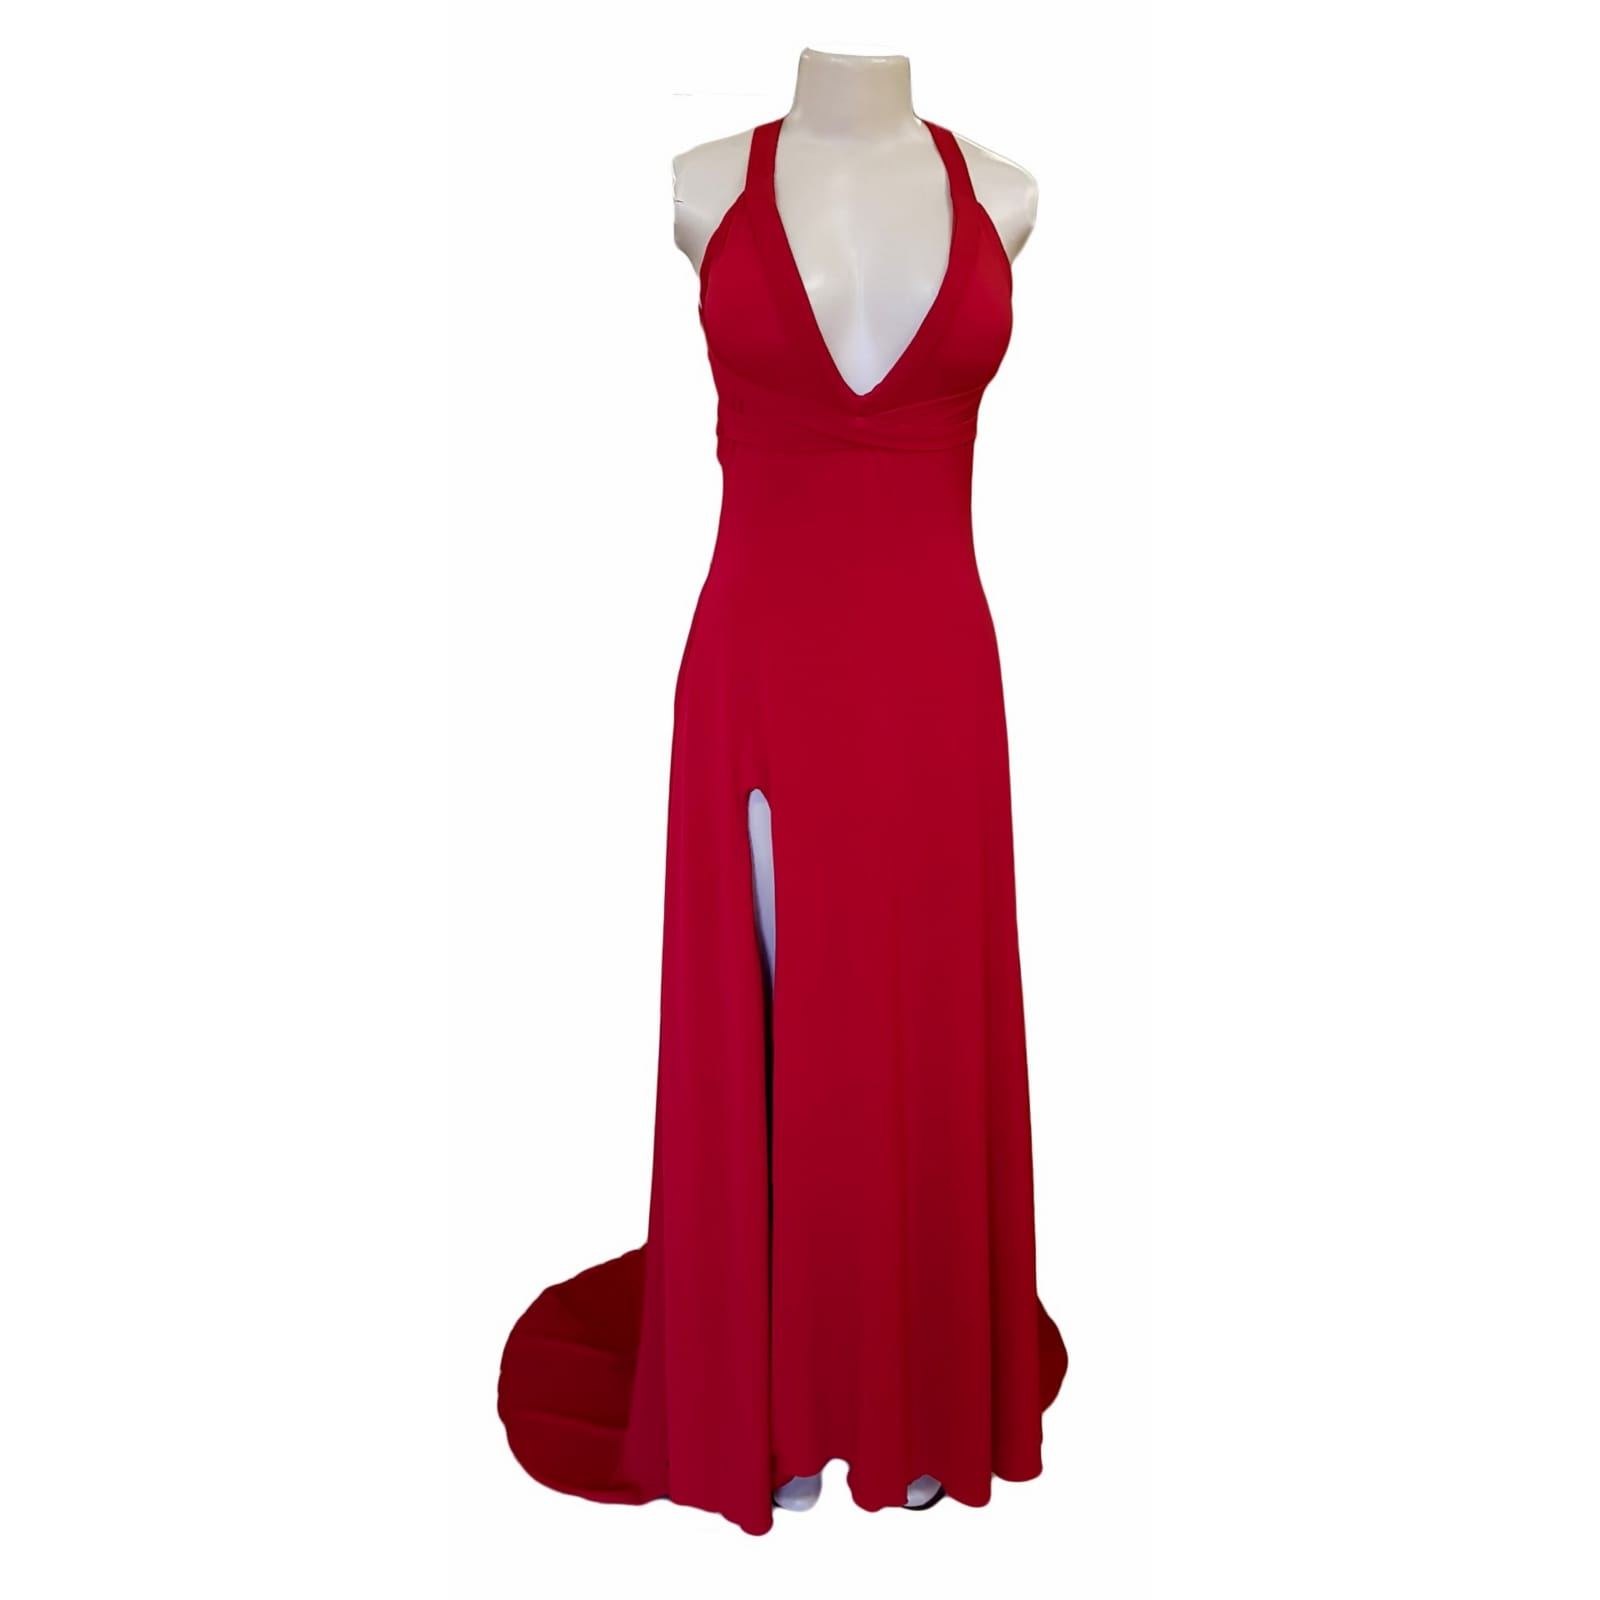 Red long sexy long prom dress 5 red long sexy long prom dress with a low v neckline & slit, a low open back with cross straps on the upper back, with a train.